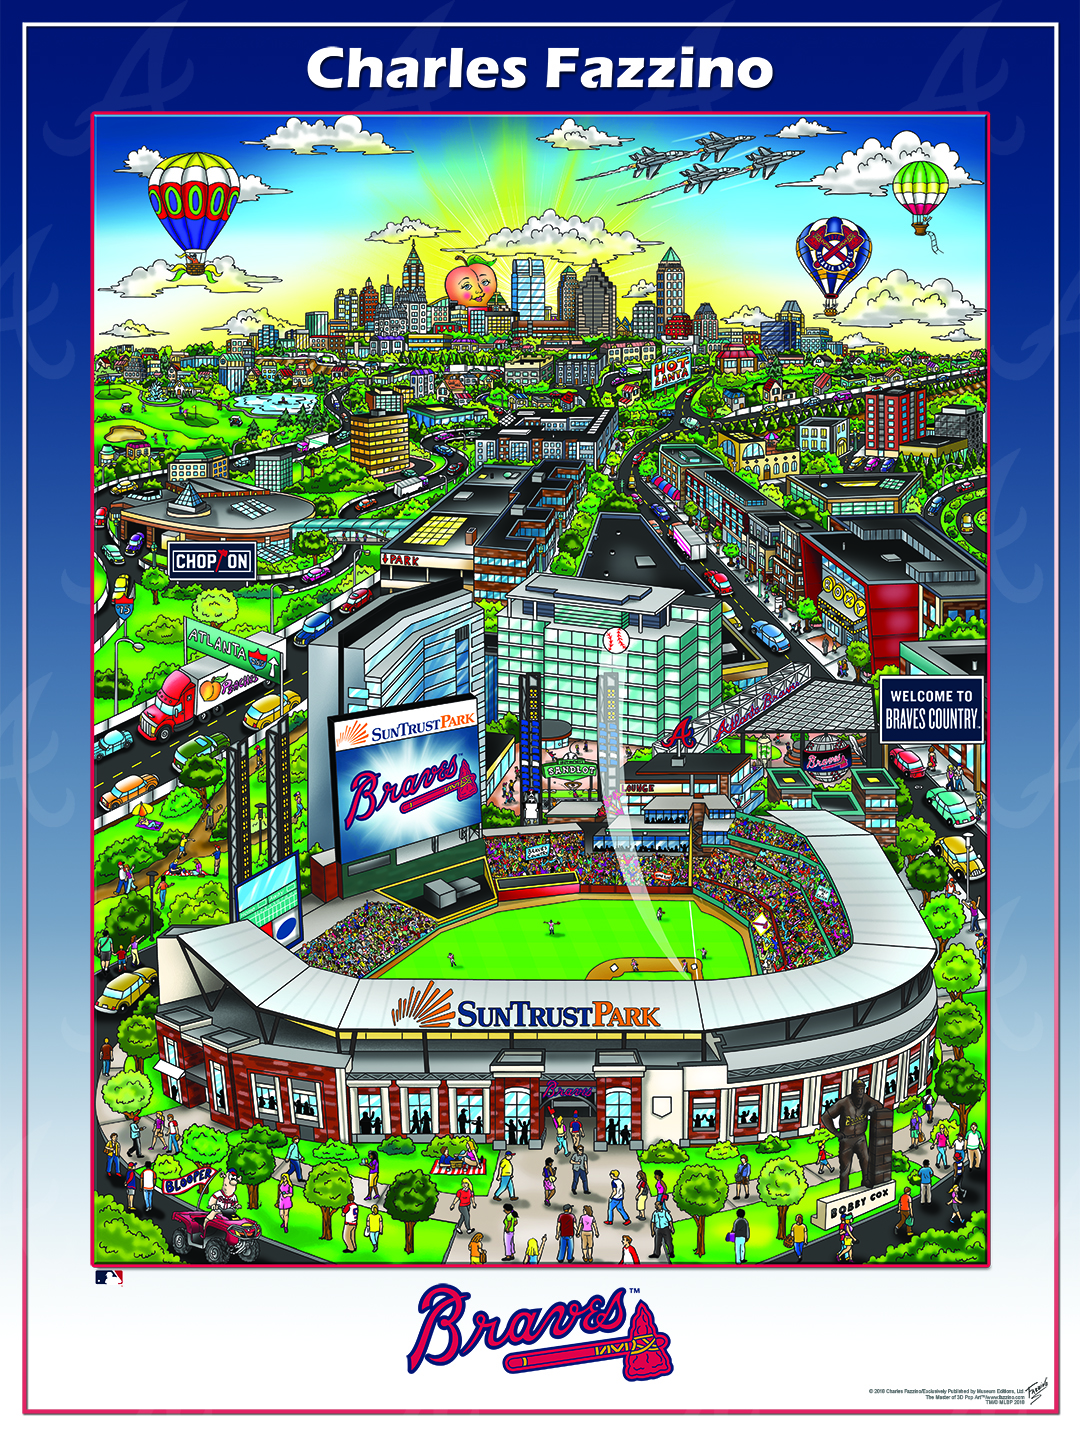 Atlanta Braves commissioned pop art baseball piece. People surrounding the new Sun Trust baseball stadium with hot air balloons above the Atlanta skyline.